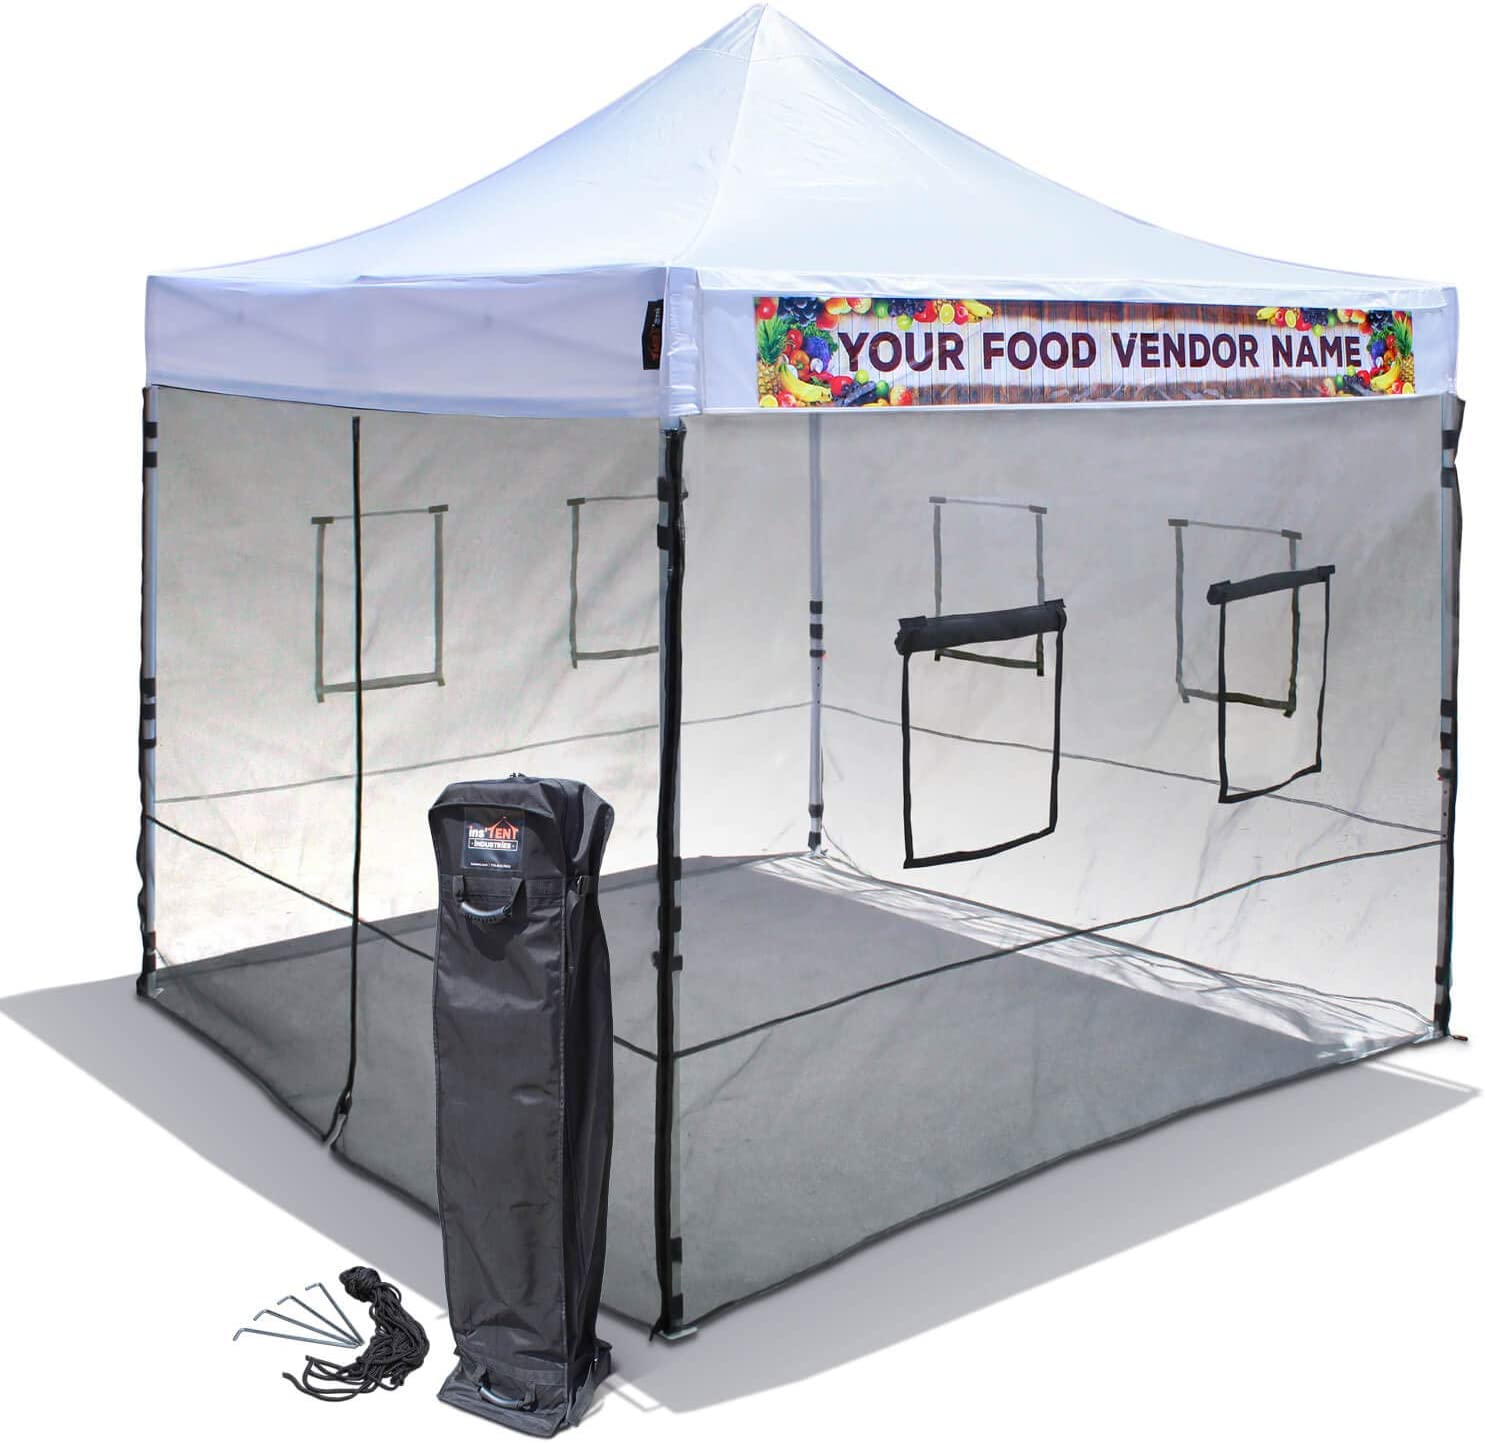 10'x10' Food Vendor Canopy Tent with Mesh Wall Set